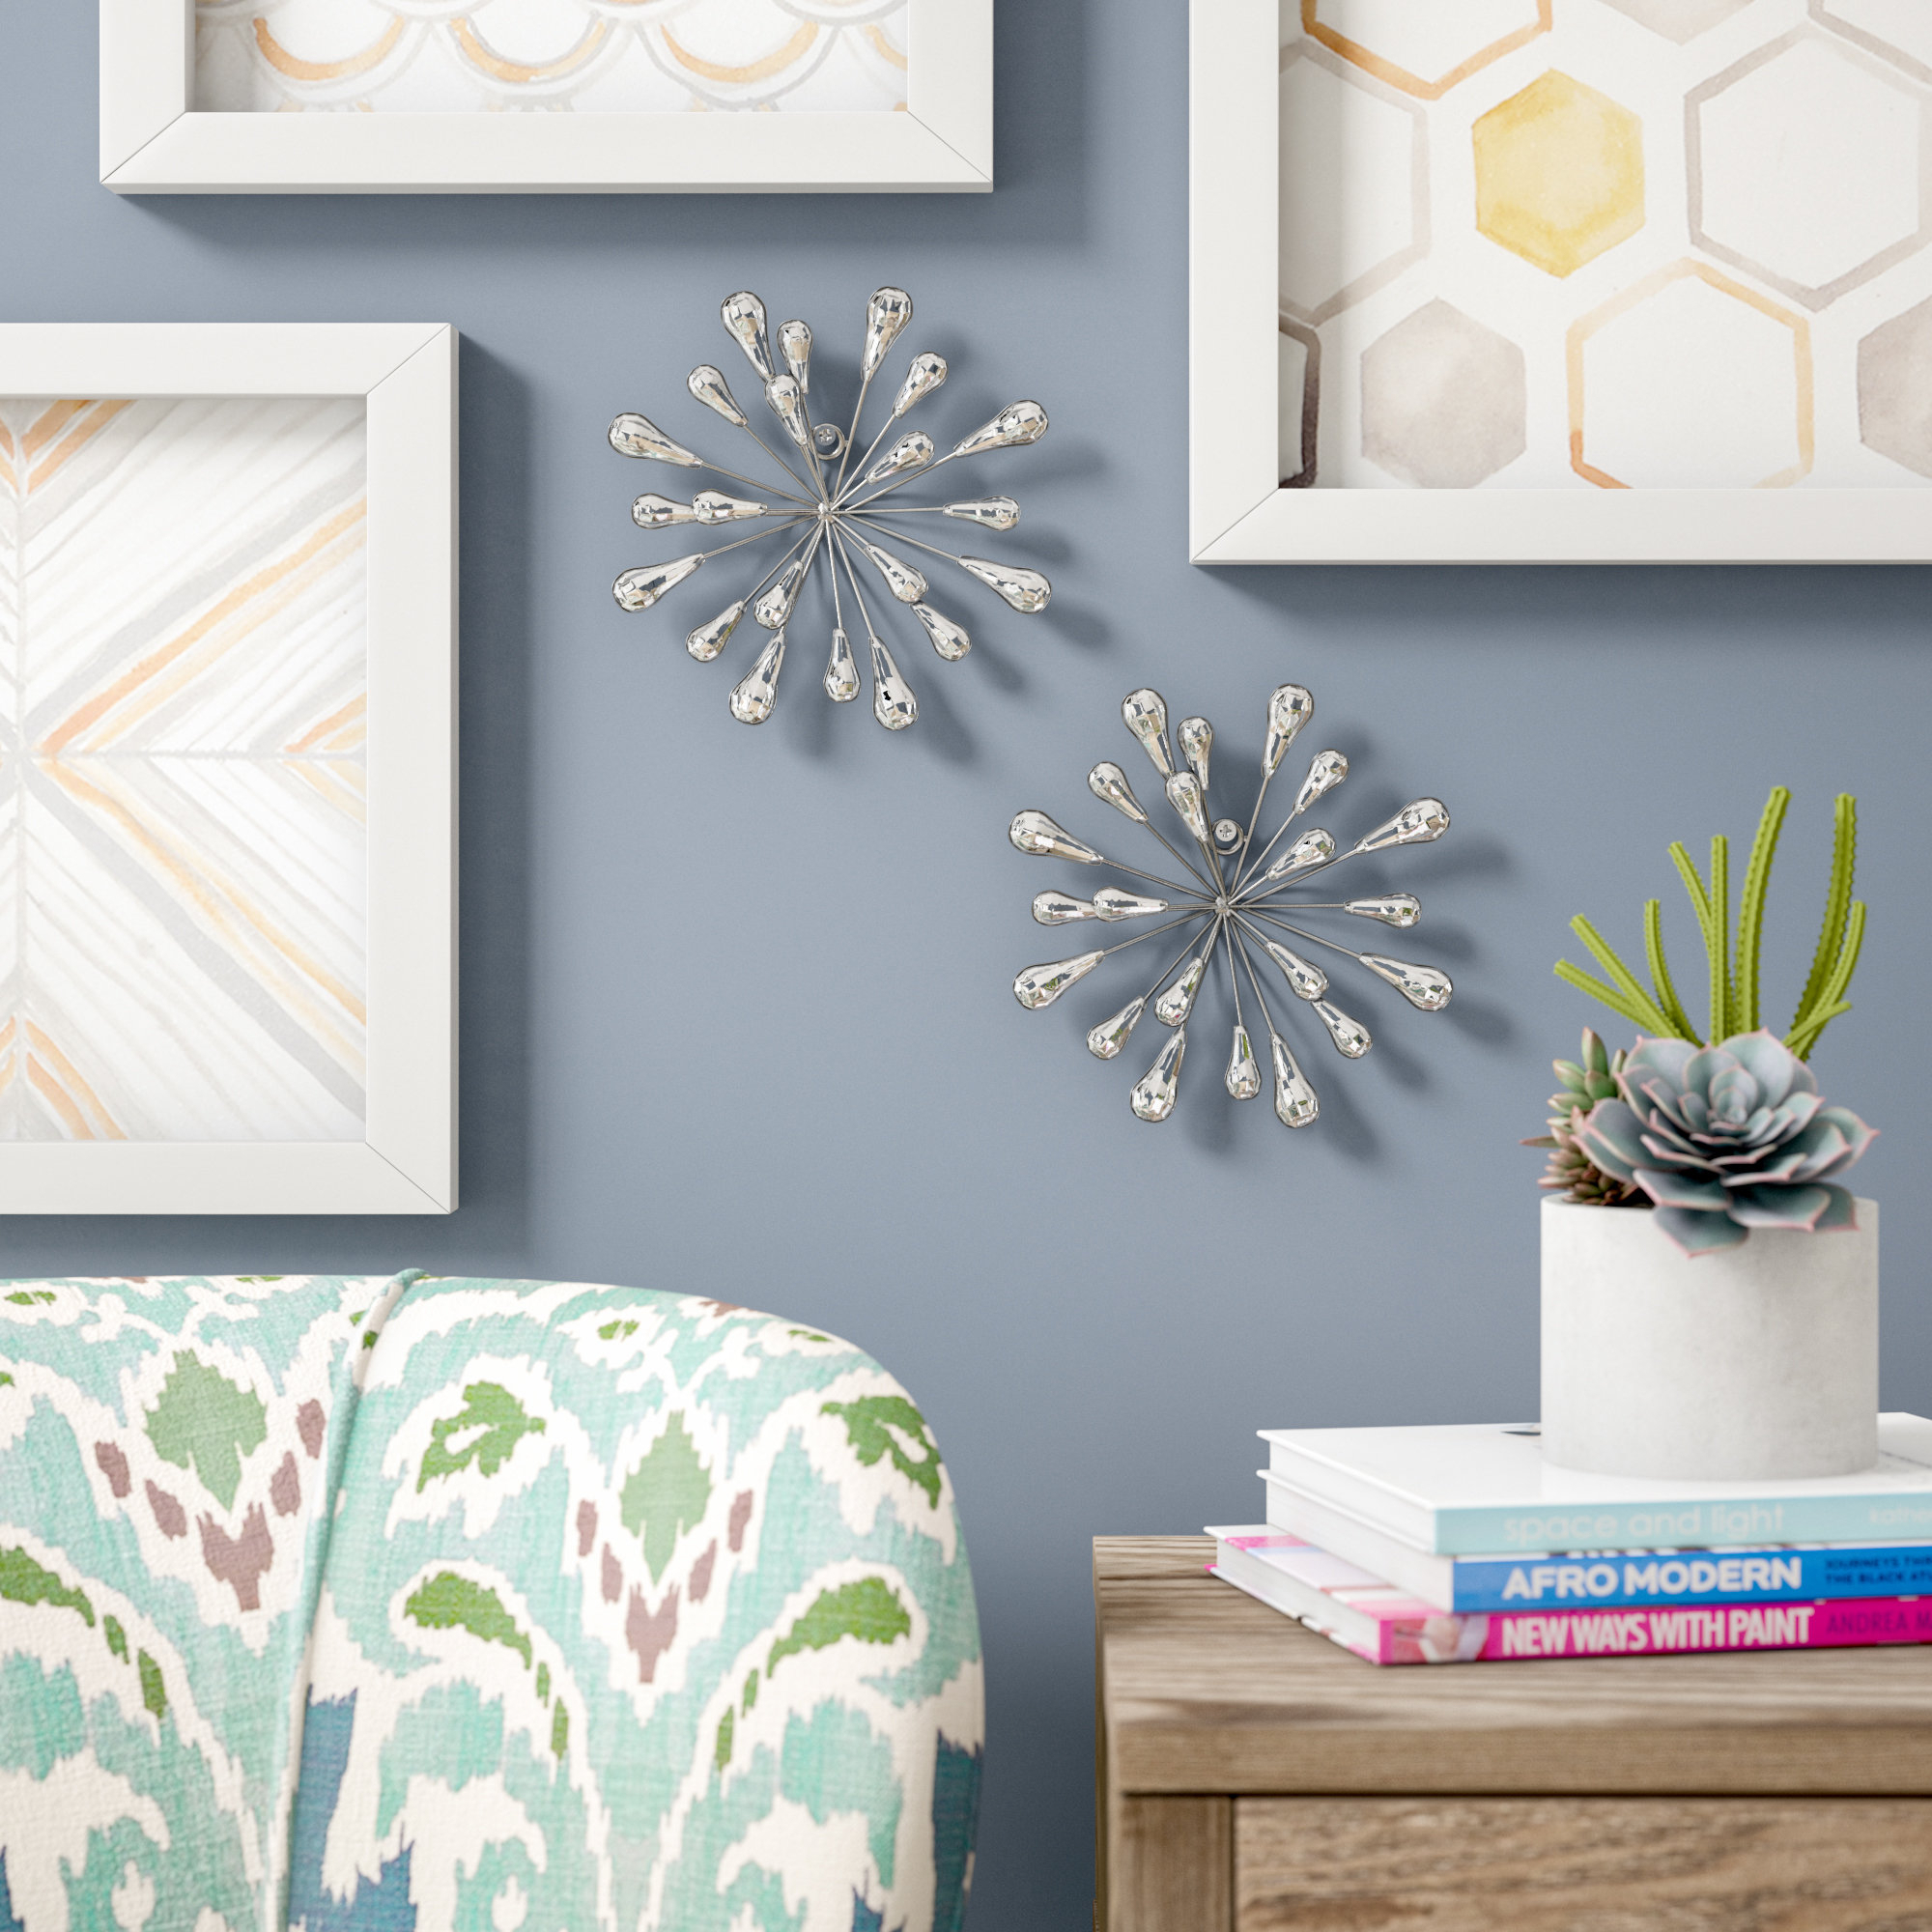 2 Piece Starburst Wall Décor Set intended for Starburst Wall Decor By Willa Arlo Interiors (Image 1 of 30)